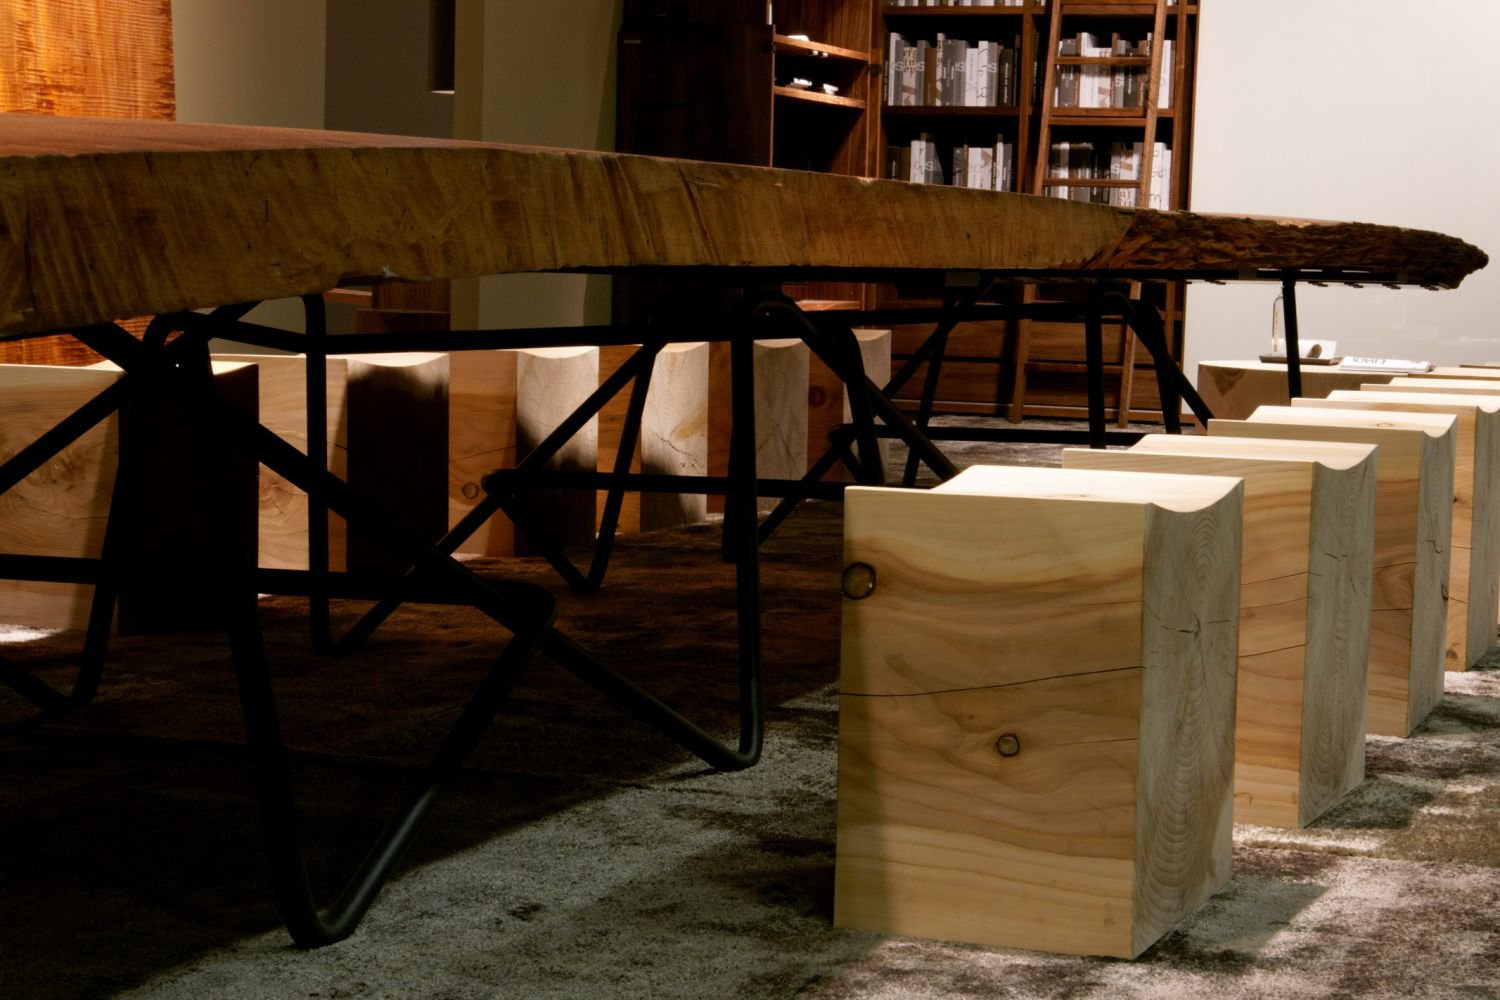 Antico dining table from Riva 1920